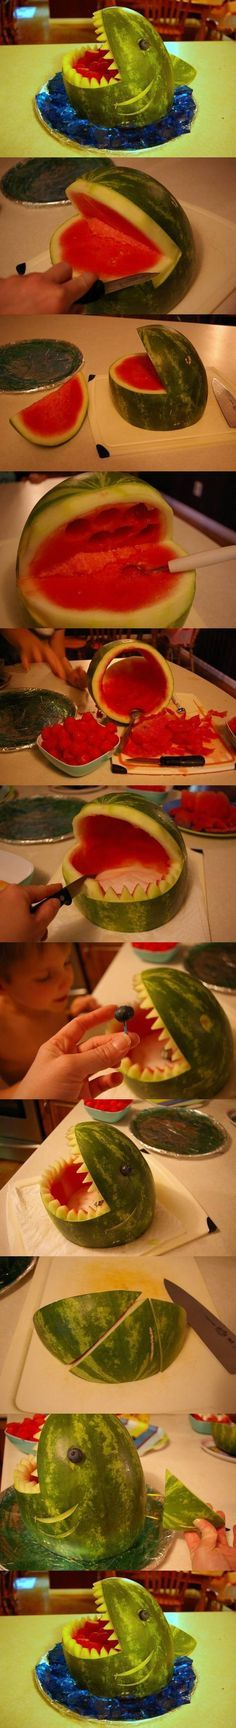 124 Best Food Watermelon Carvings And Design Images On